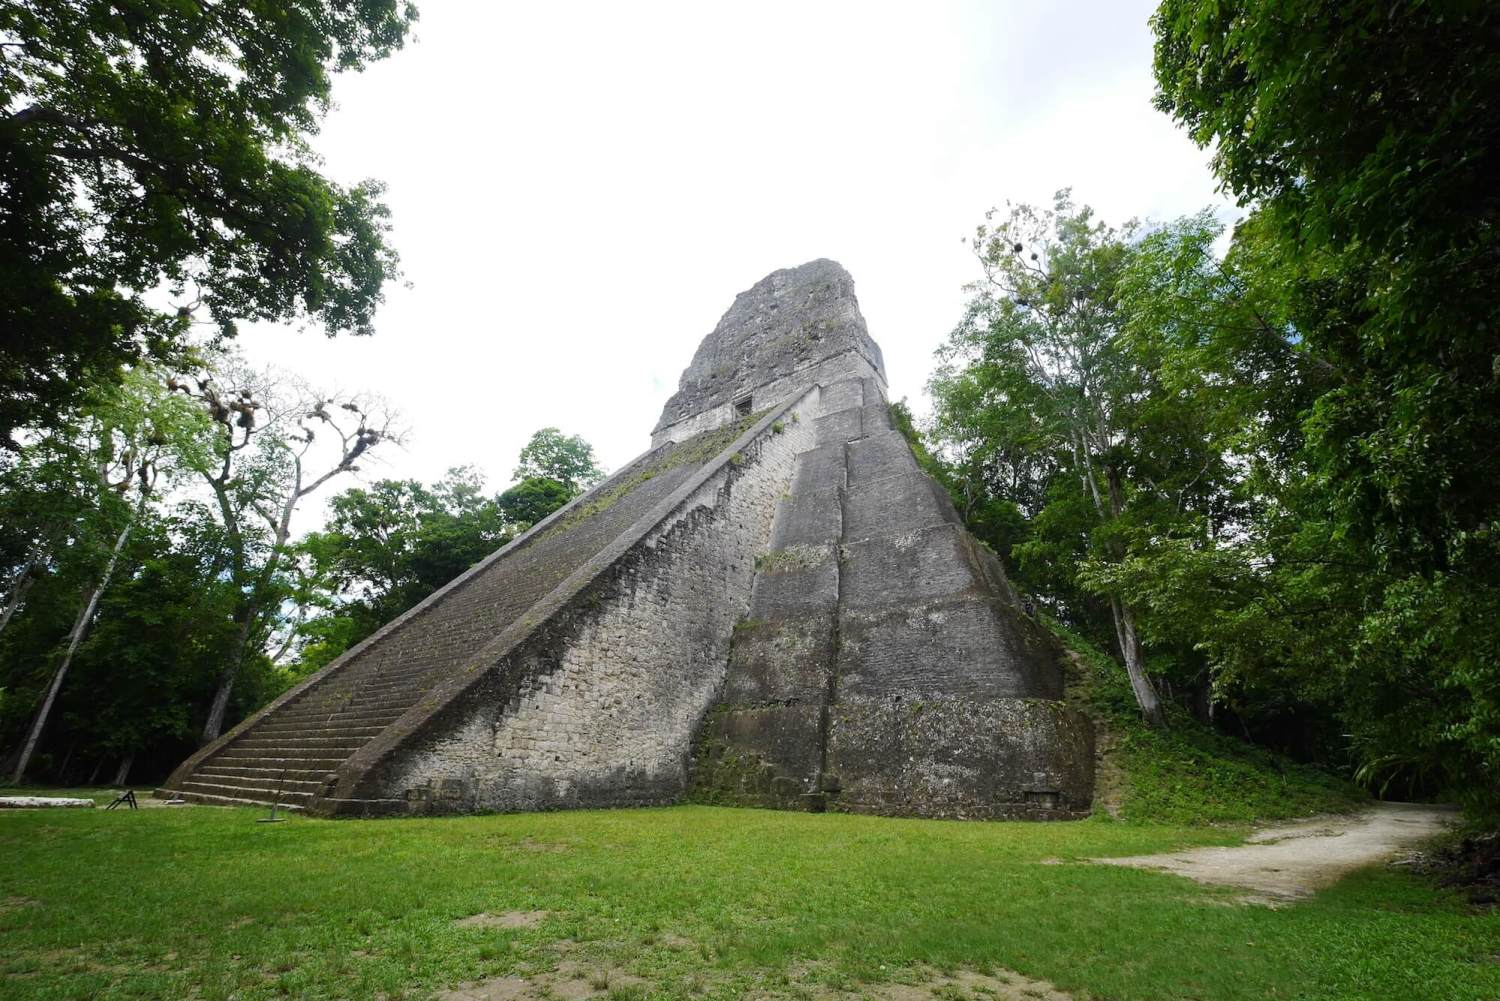 temple V reconstruction, Tikal temple 5